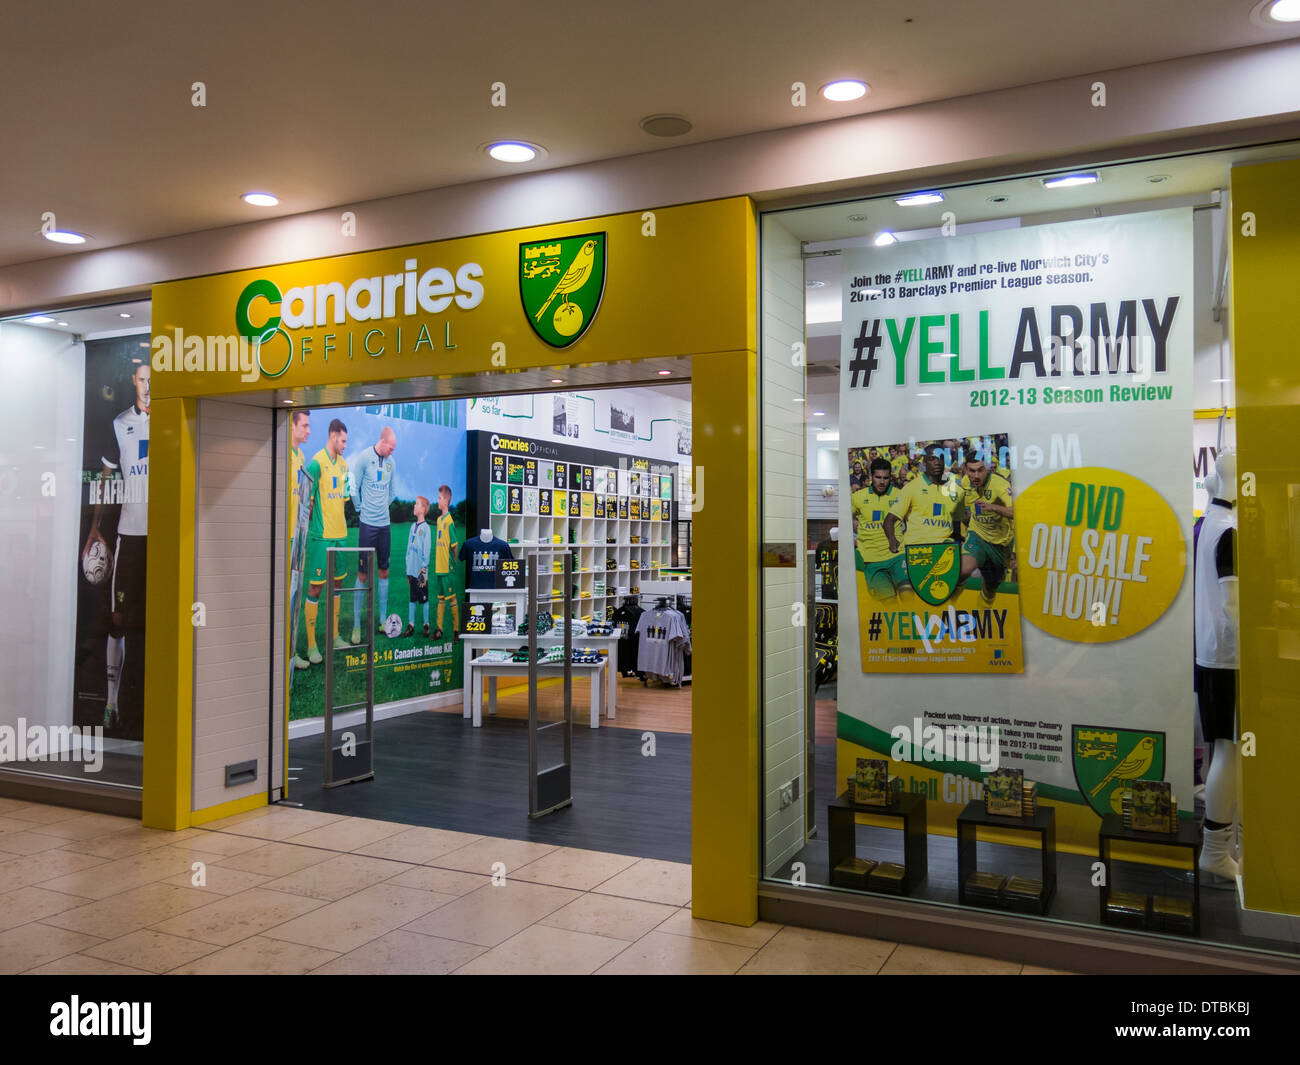 norwich city football club shop store in shopping mall